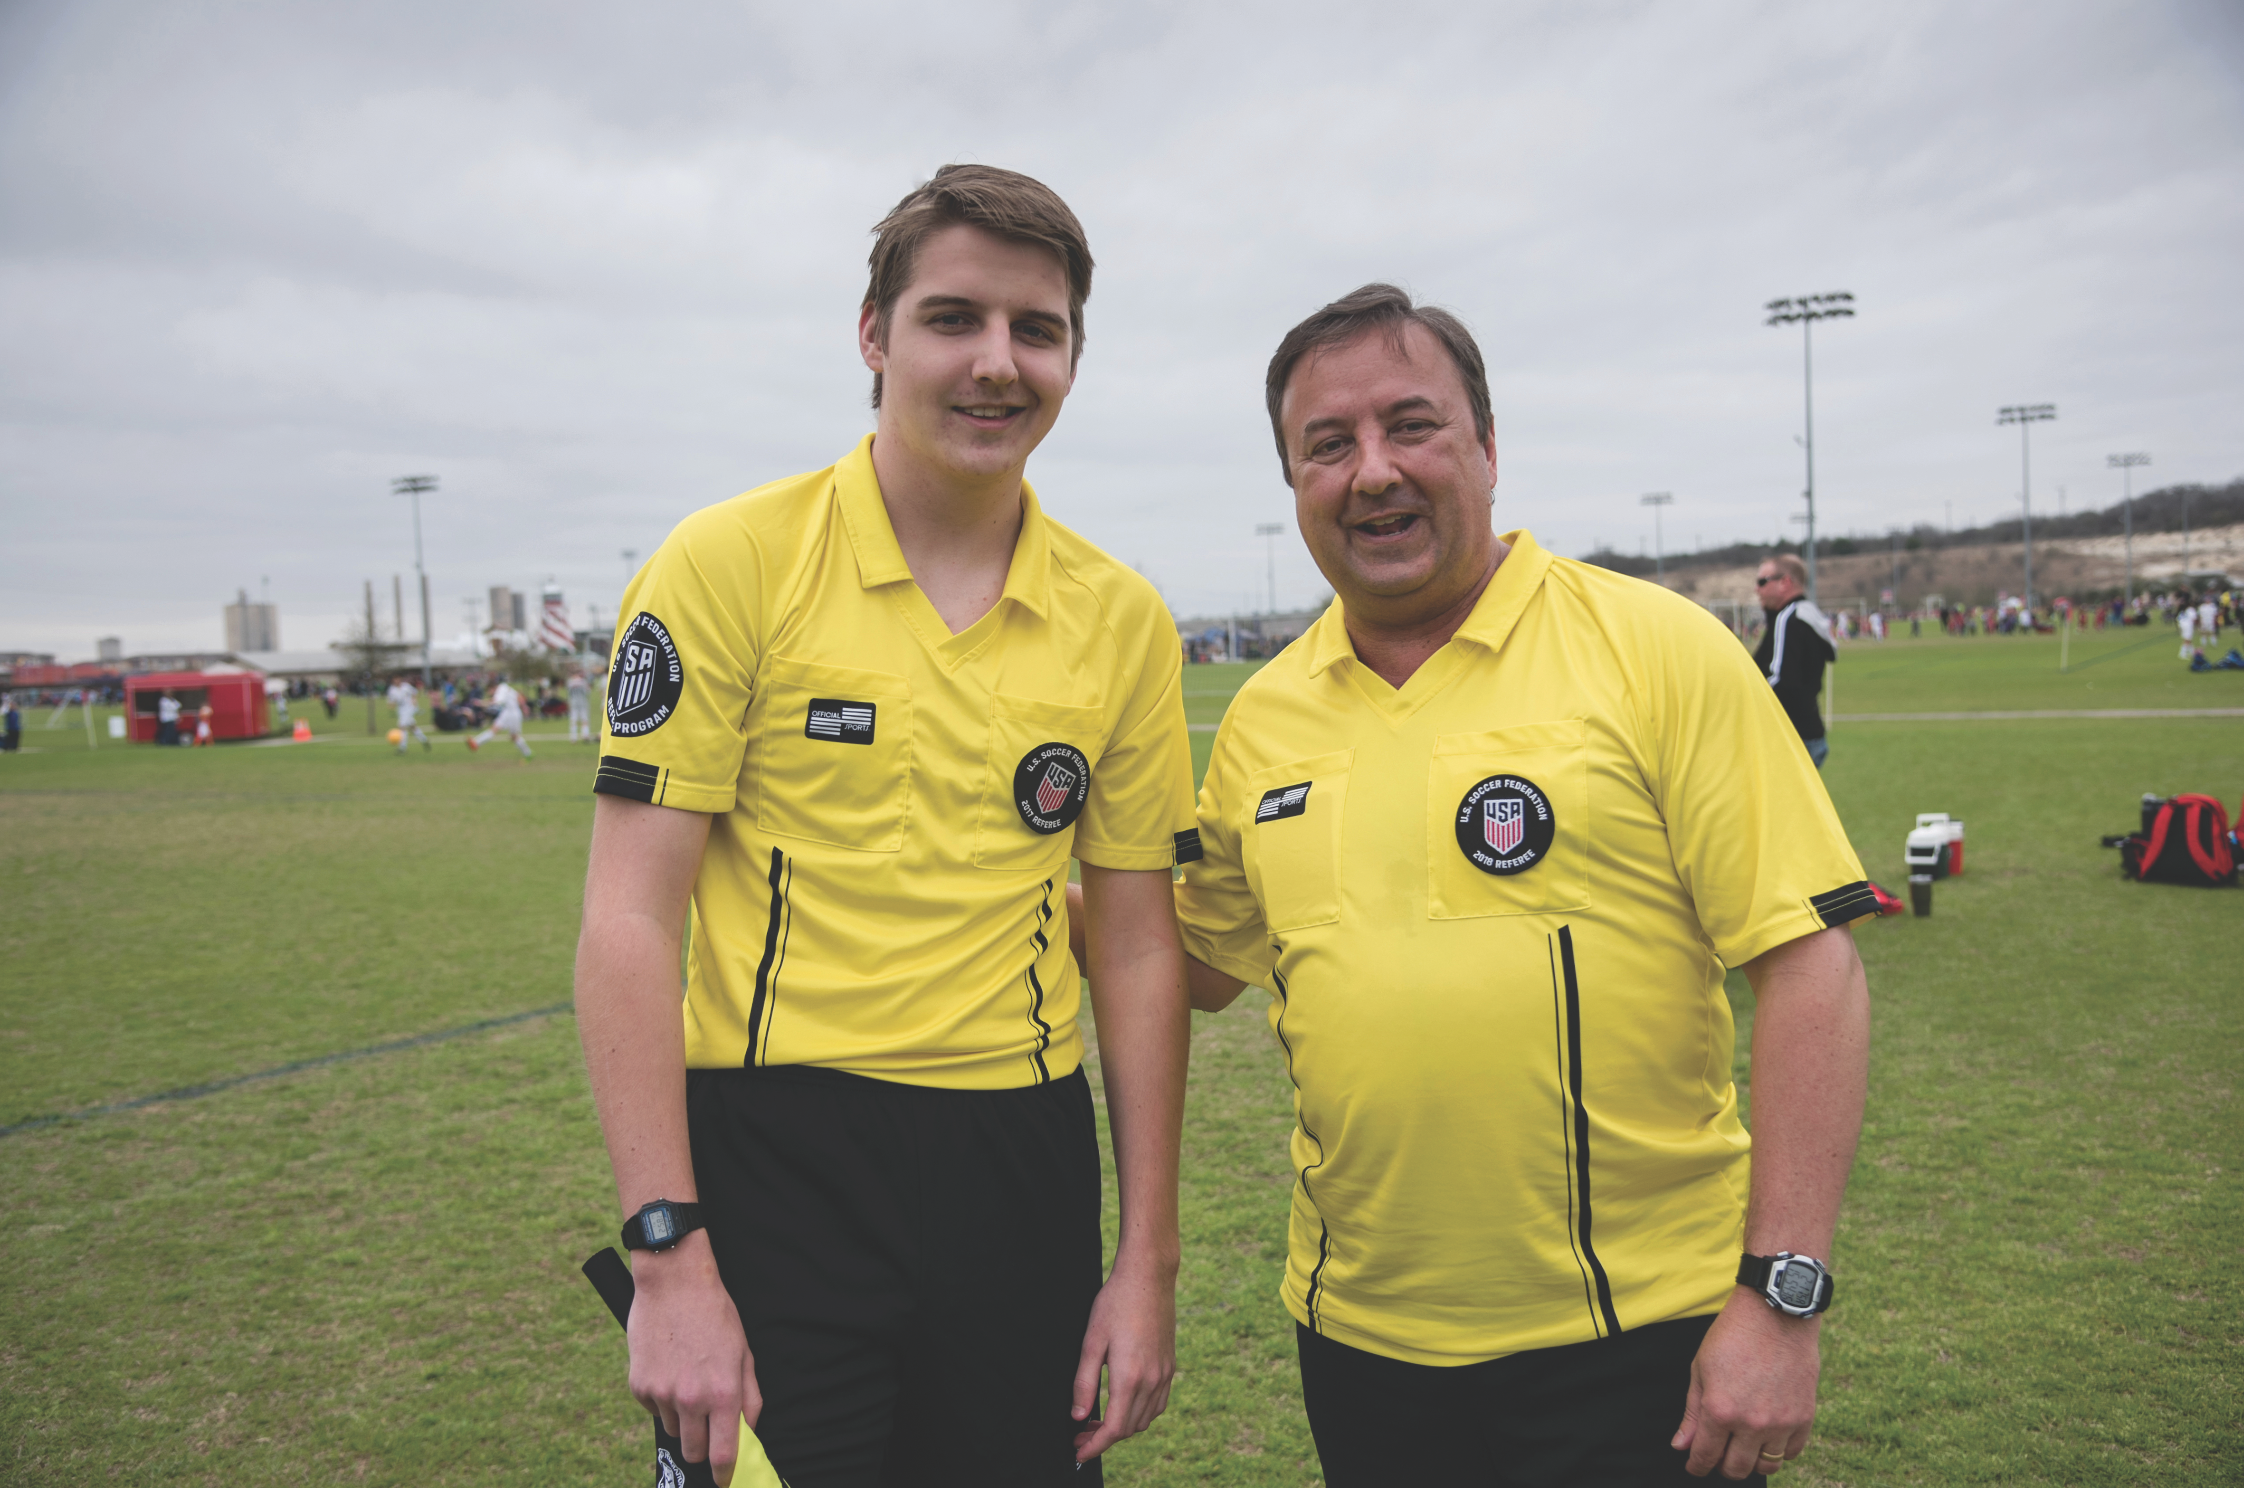 Michael Parker (right) and his son Zachary are involved with youth soccer and referee games on weekends.